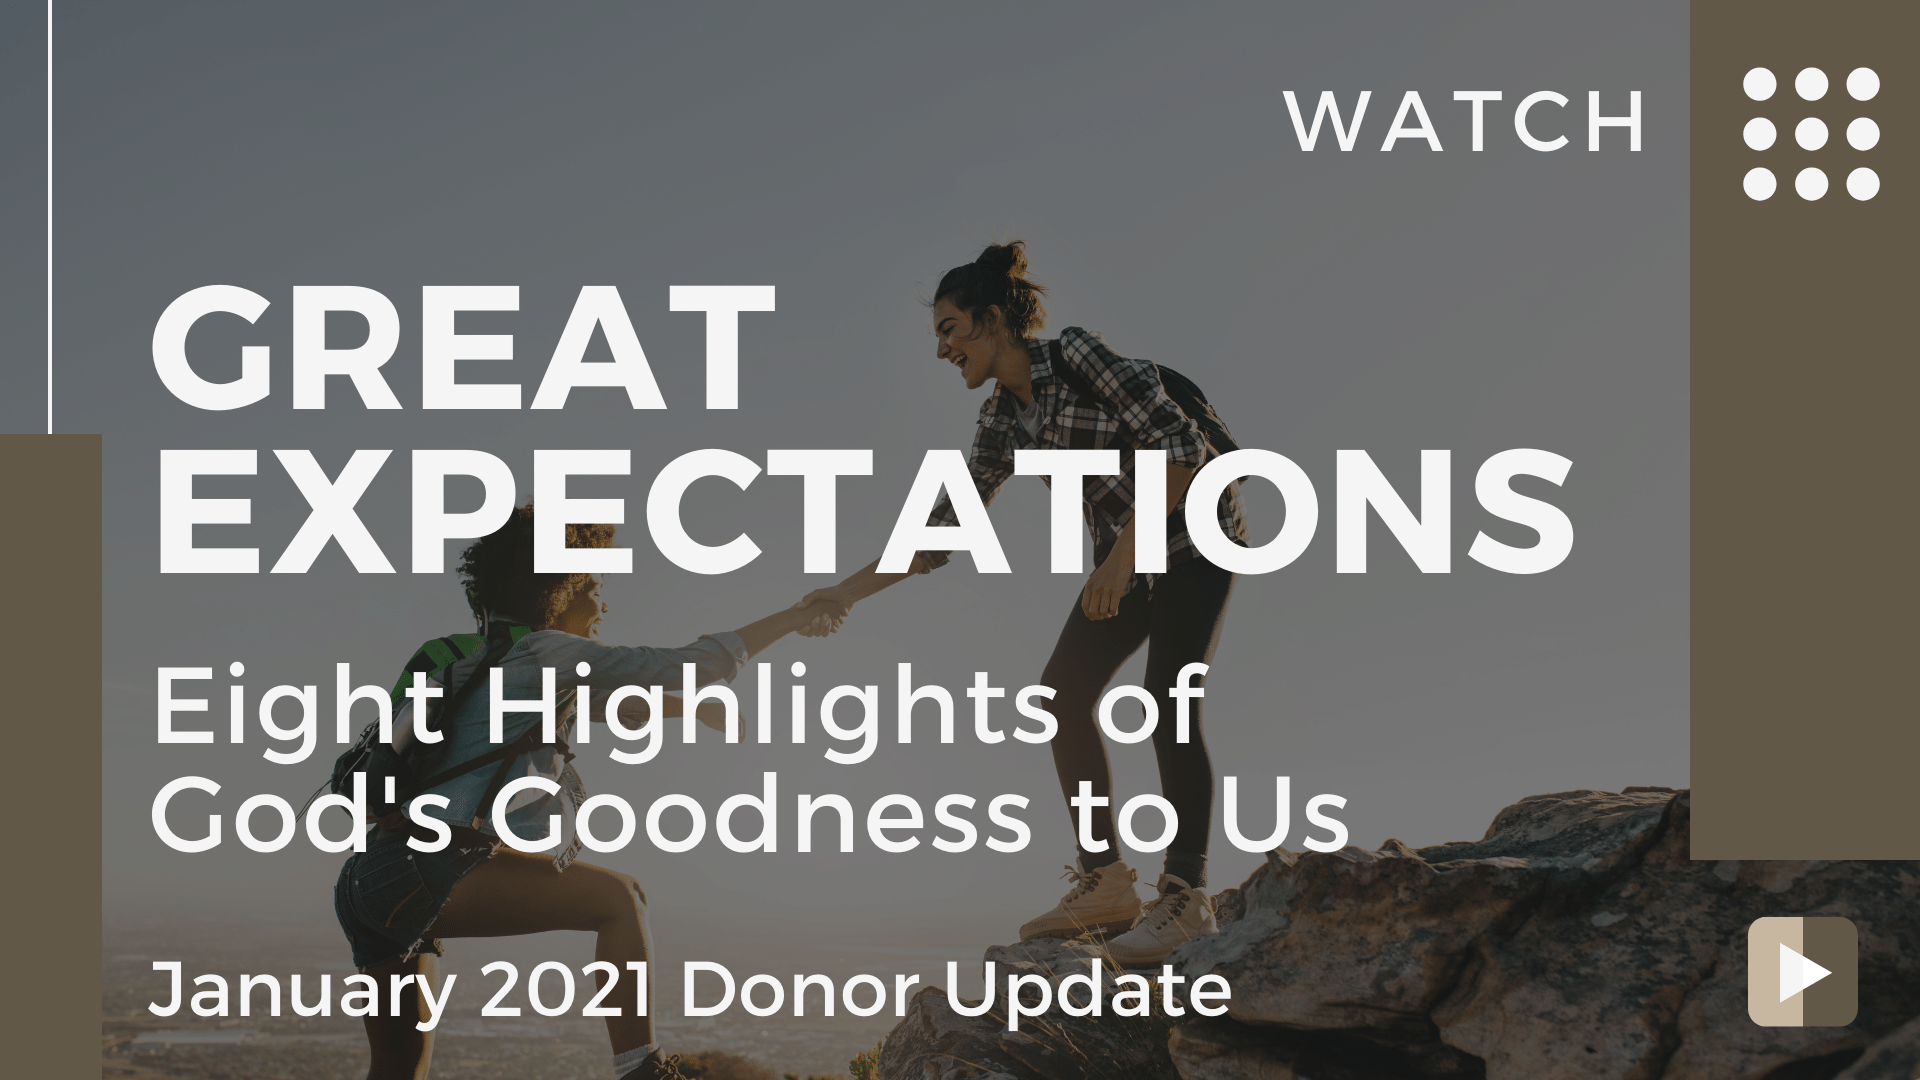 January 2021 Donor Update